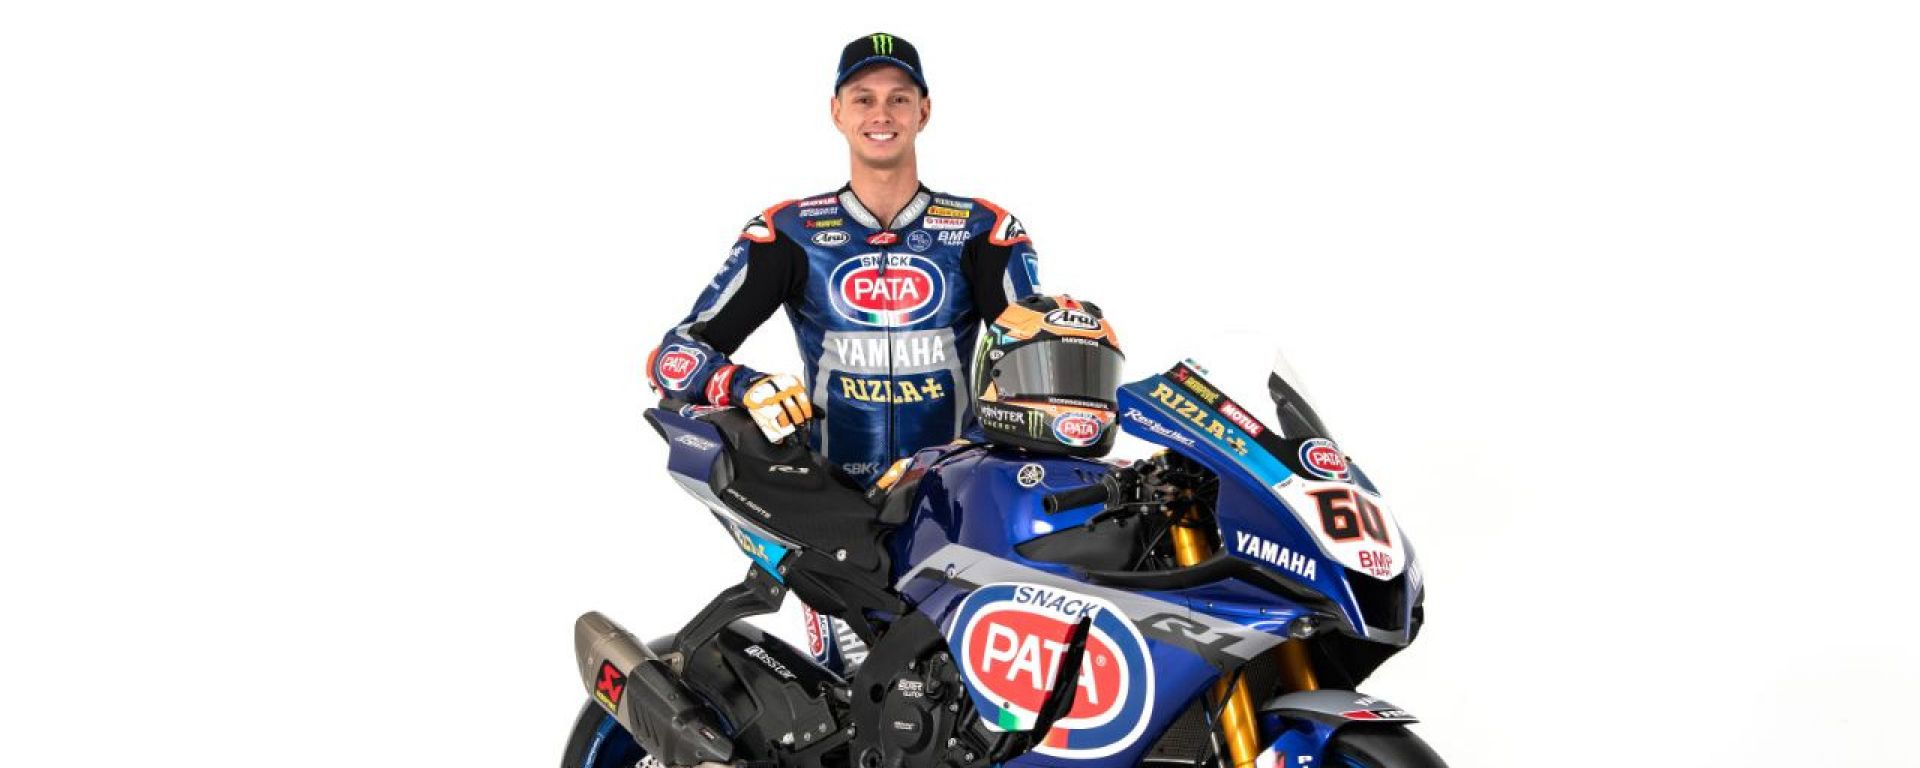 World Superbike 2020, Michael Van der Mark (Yamaha)